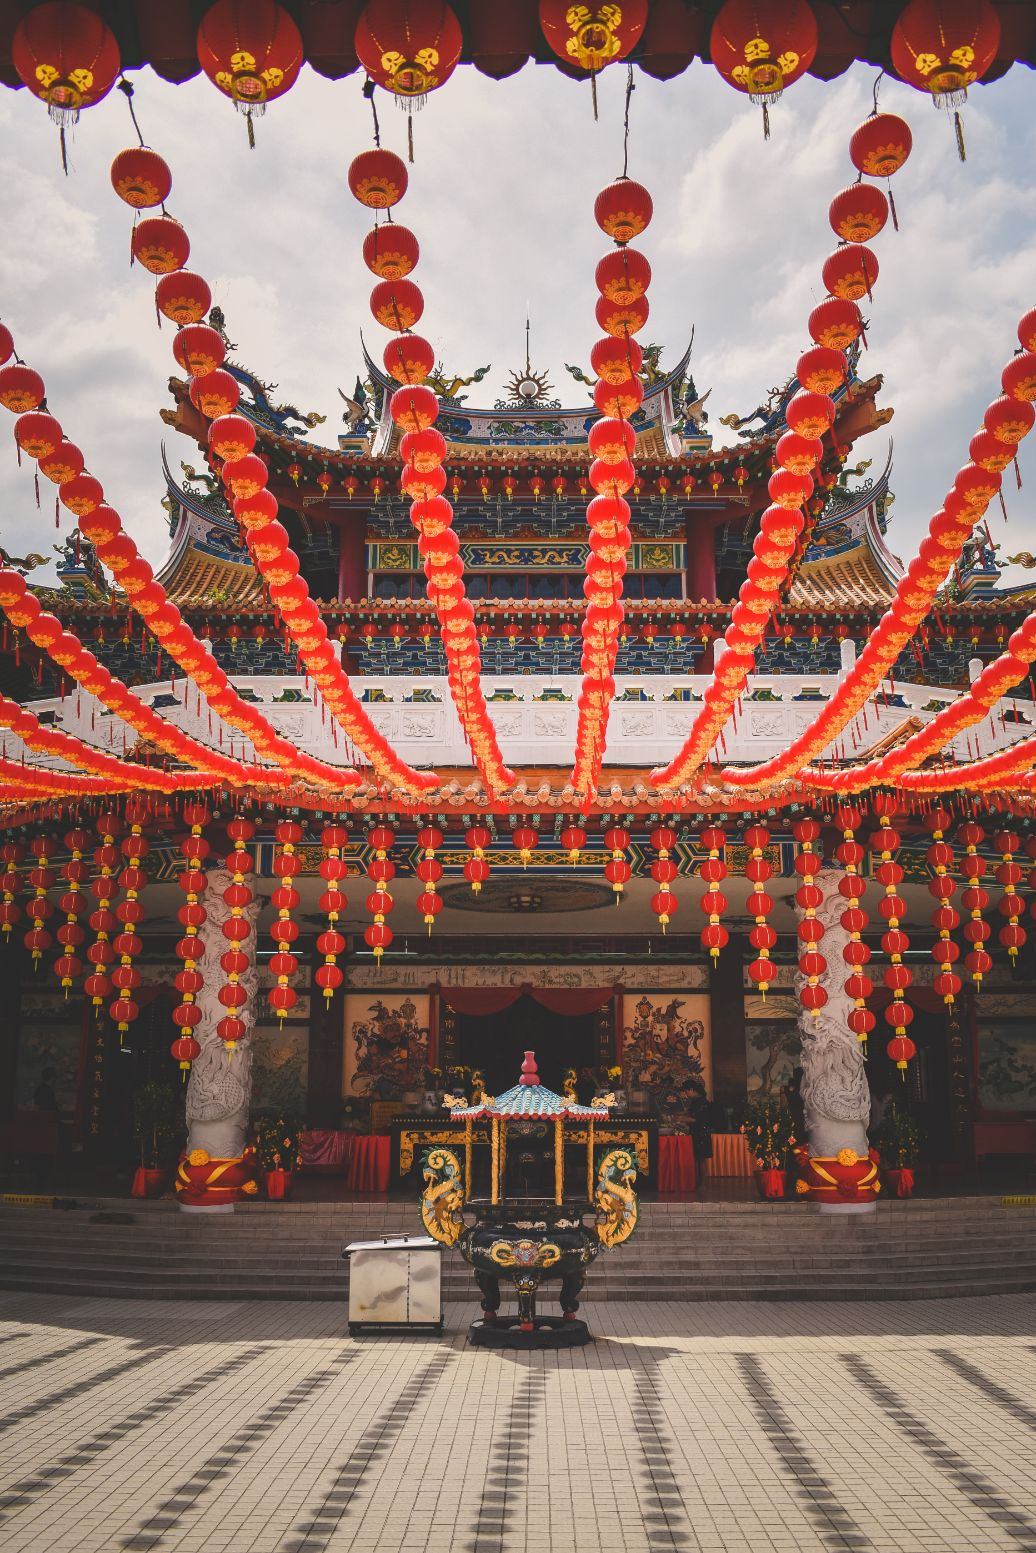 temple with red lanterns in Malaysia